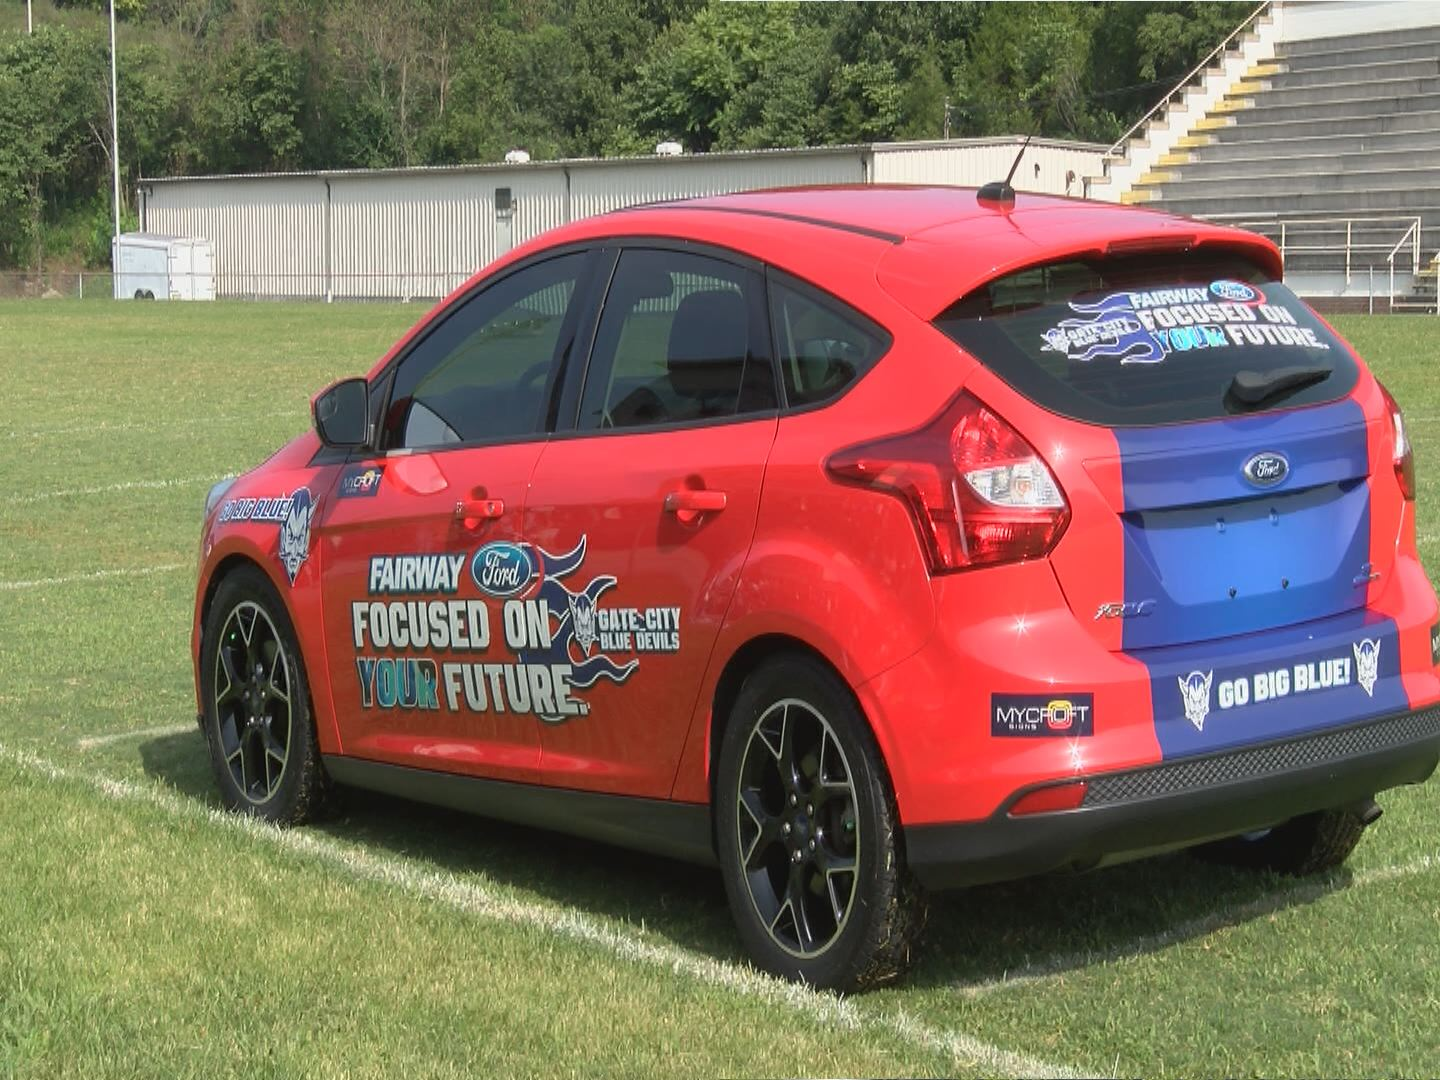 Students with perfect attendance at one school get chance to win car